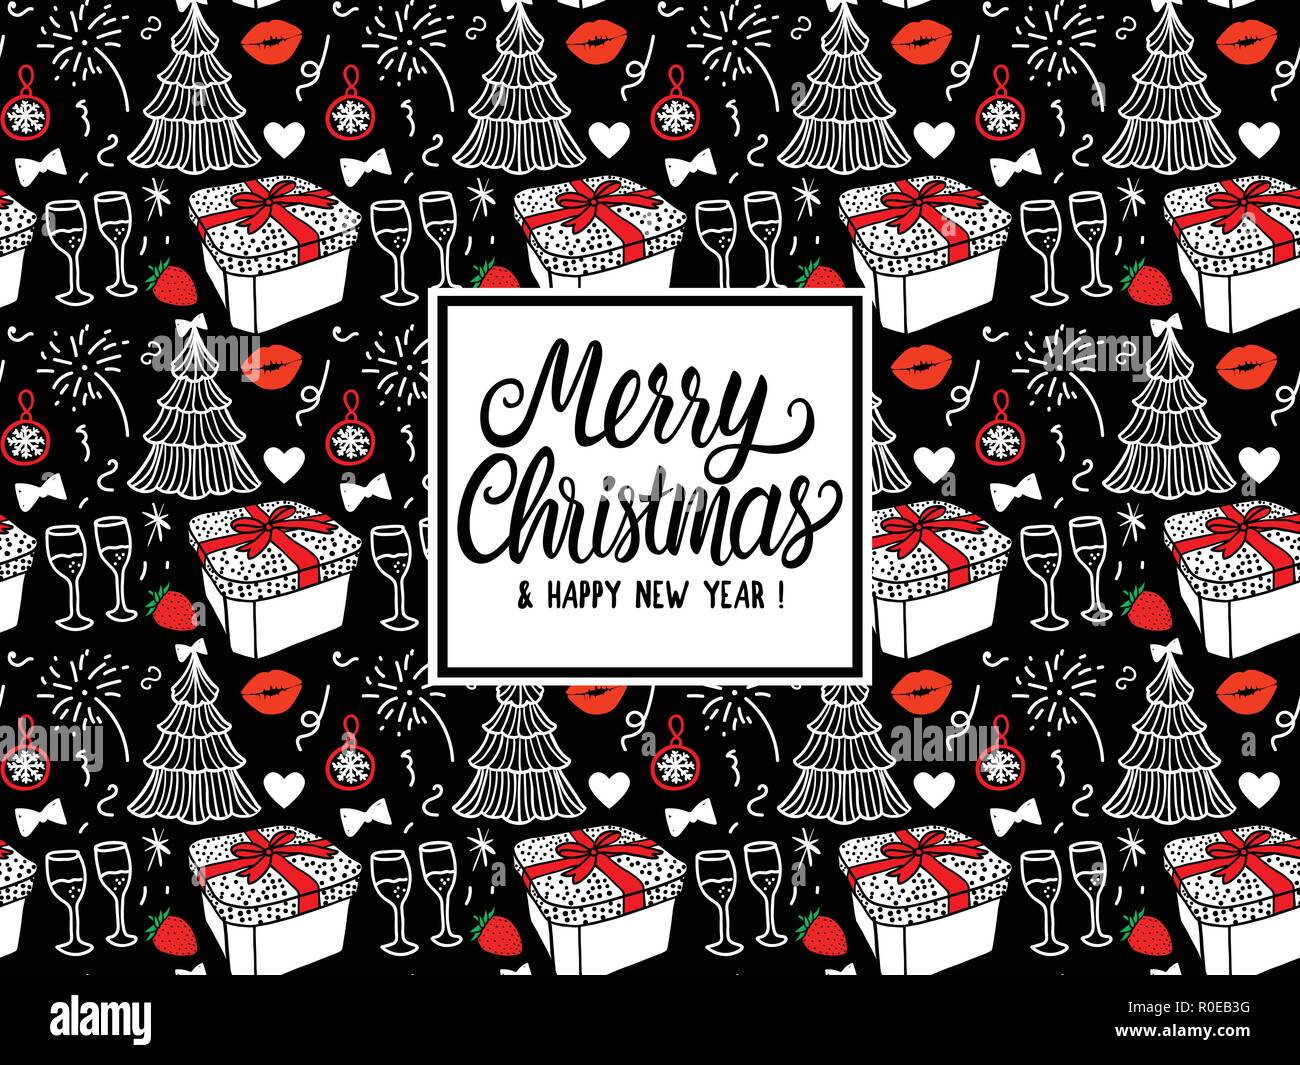 merry christmas and happy new year card fashion sketch celebration gift box tree and fireworks hand drawn vector illustration white and red on black